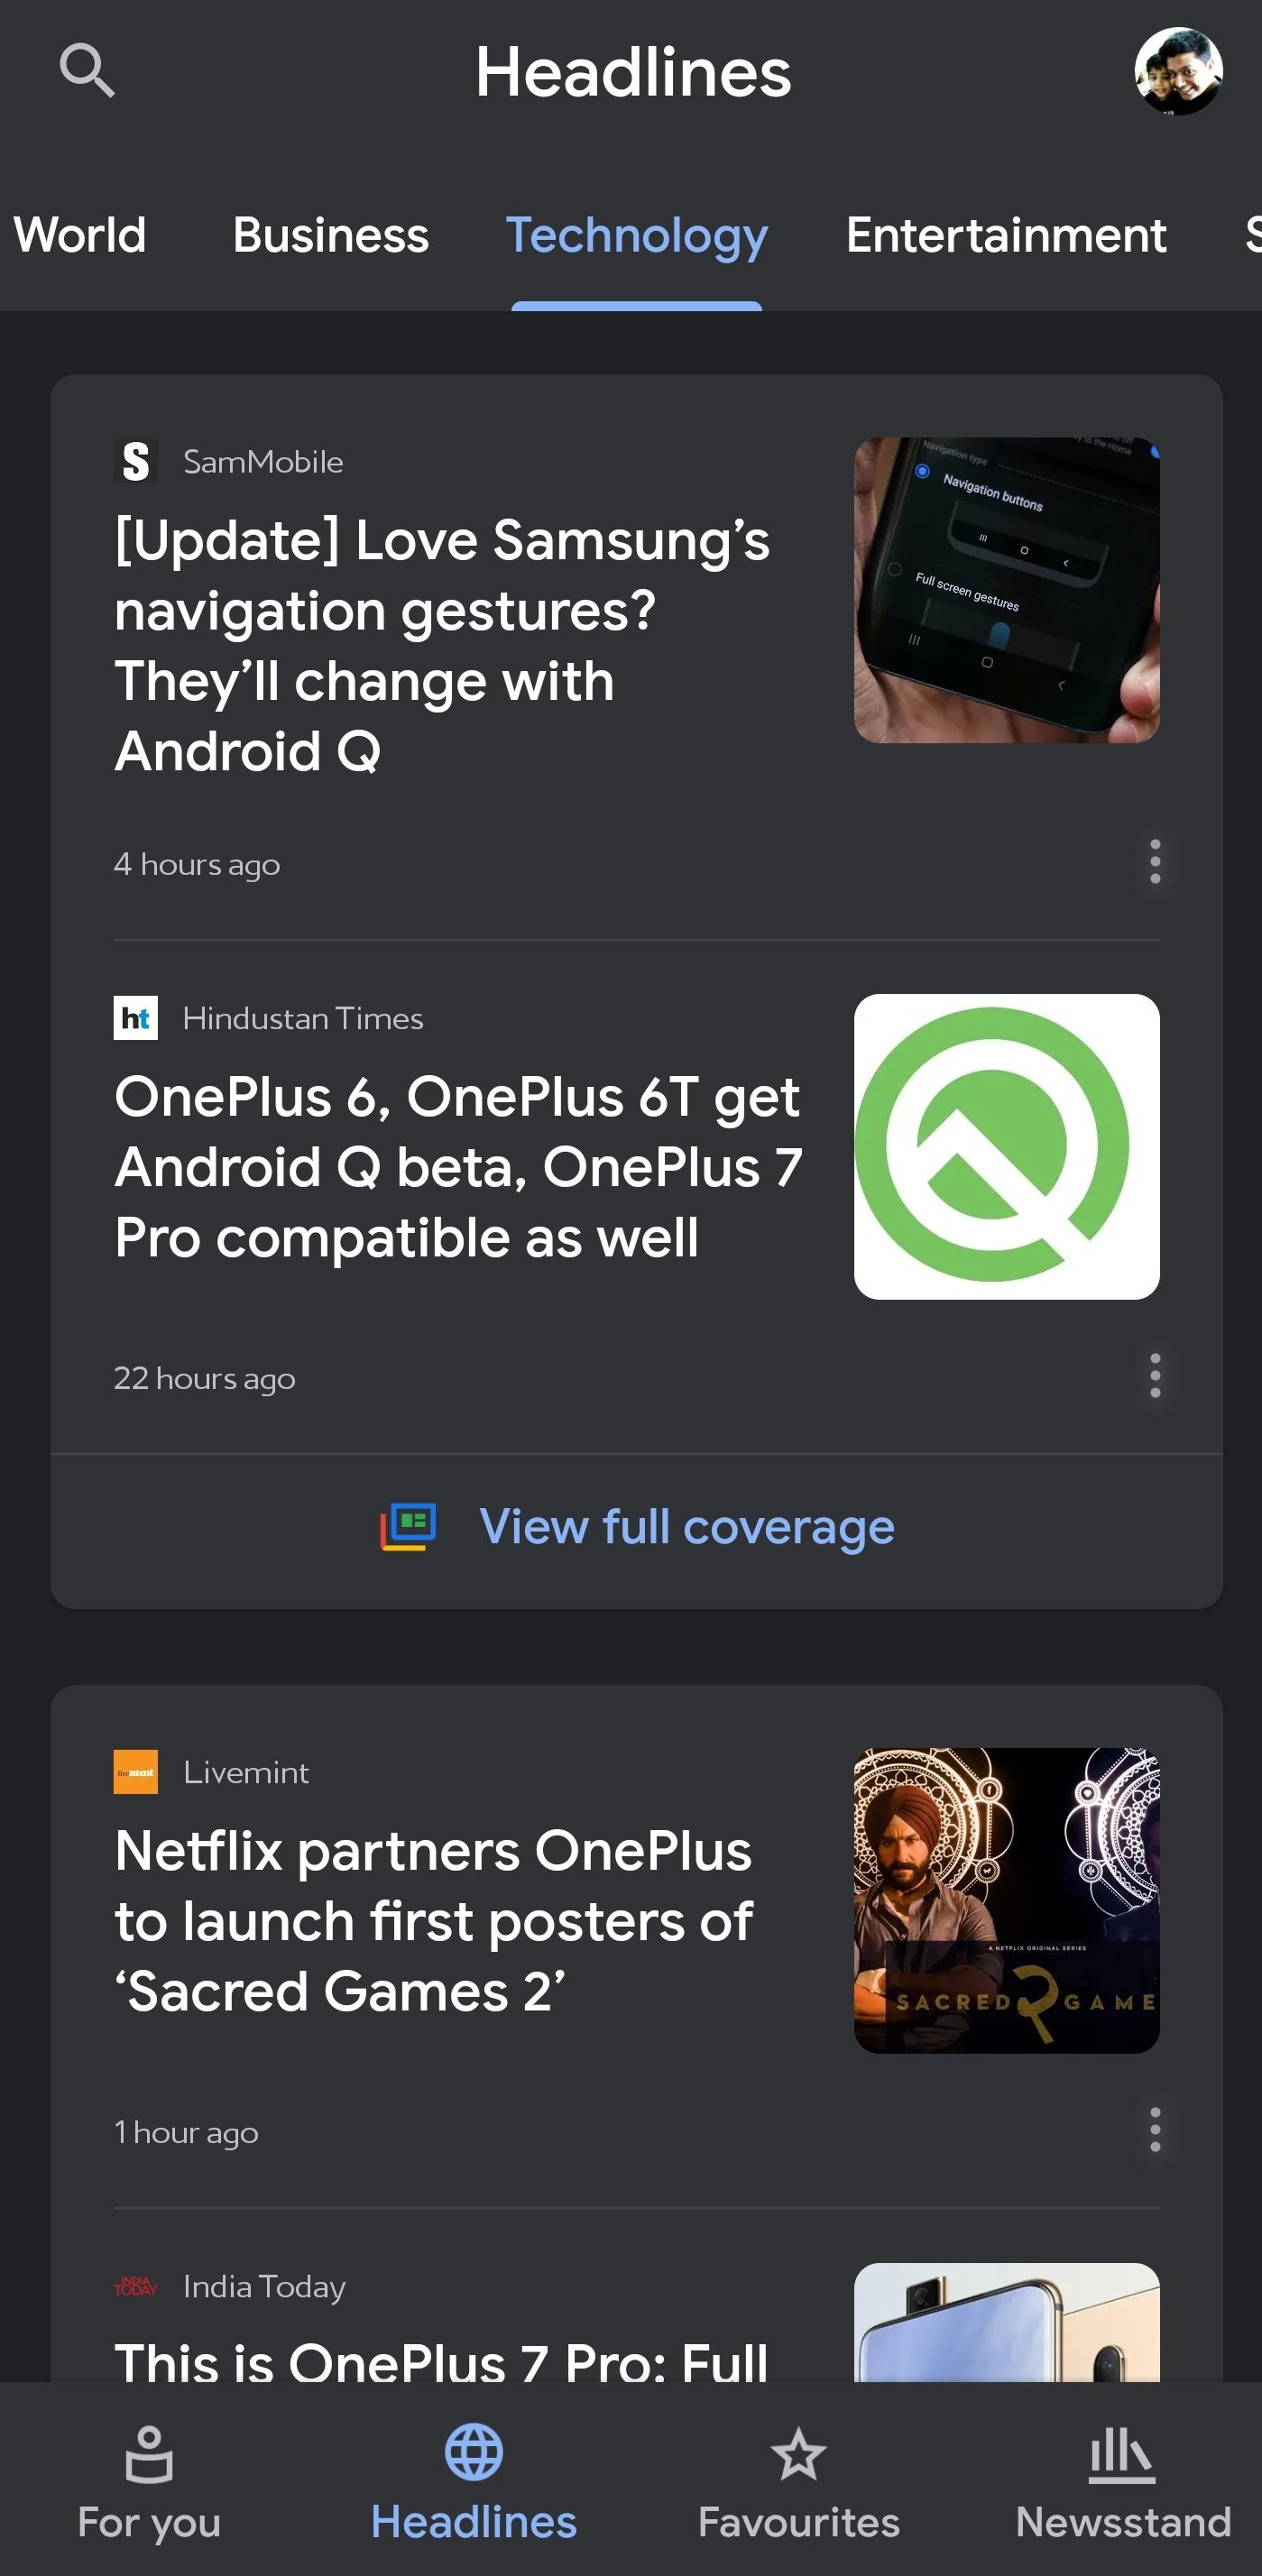 How To Enable Dark Mode On Google News